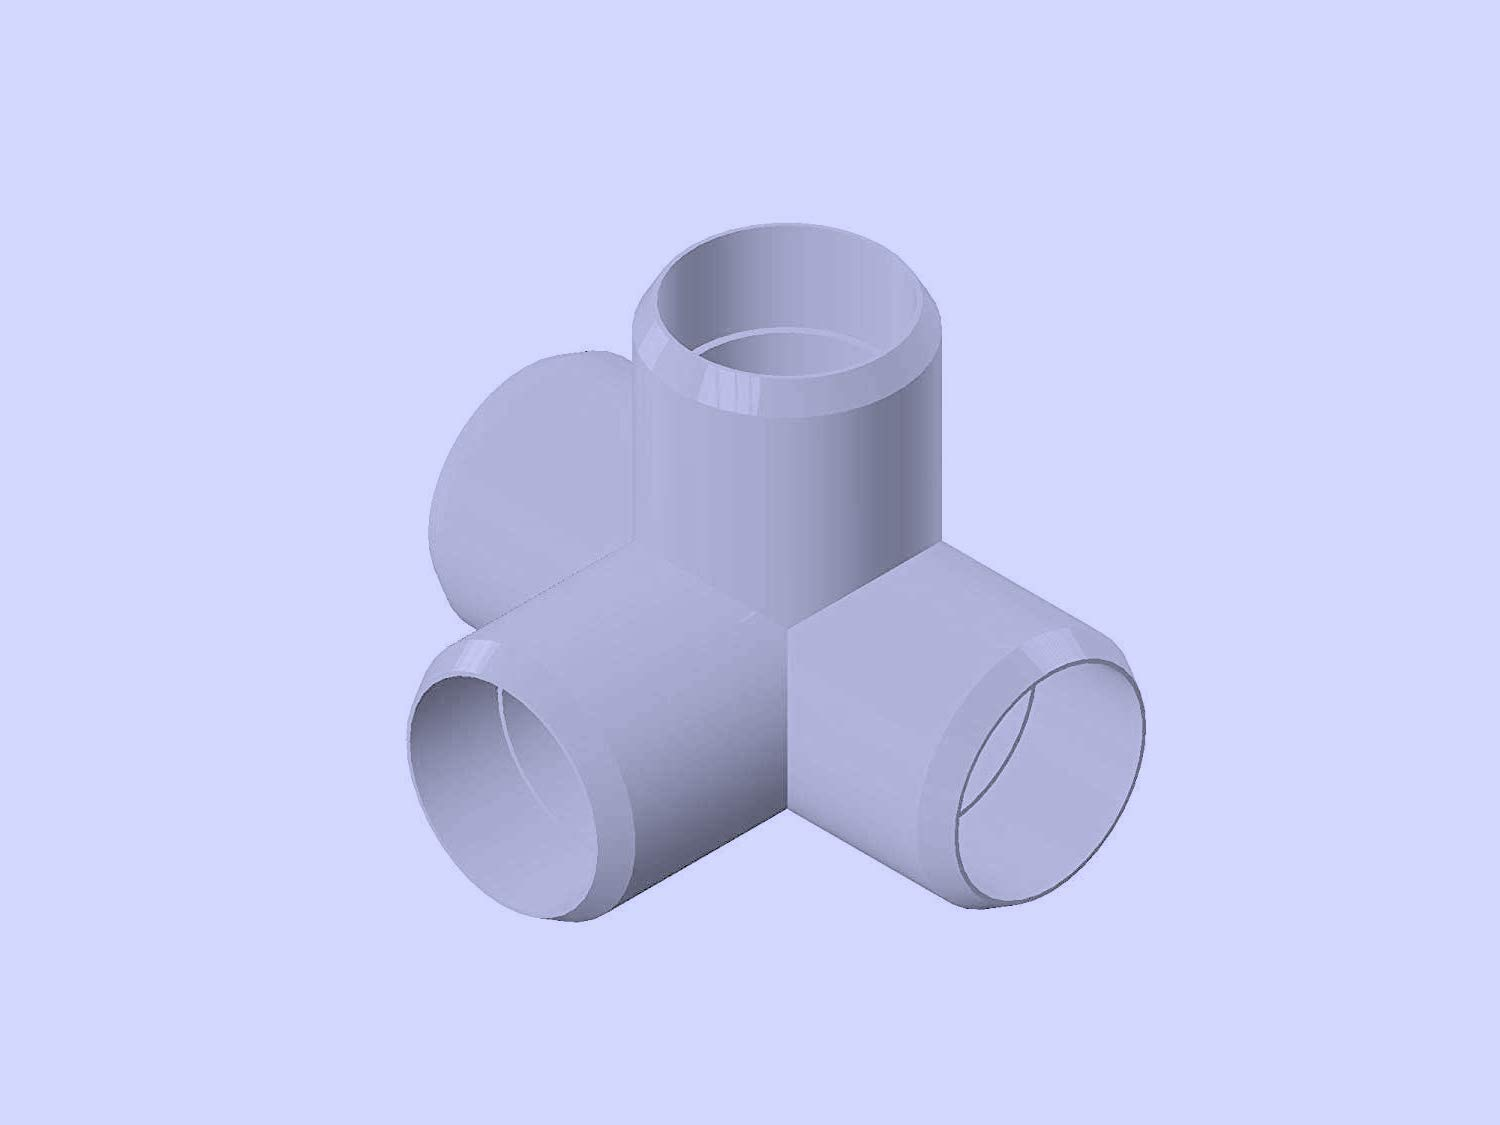 Sustainable Village PVC Pipe Fittings for Building Furniture and Cool Structures 1 Inch, 3-Way Elbow, 24